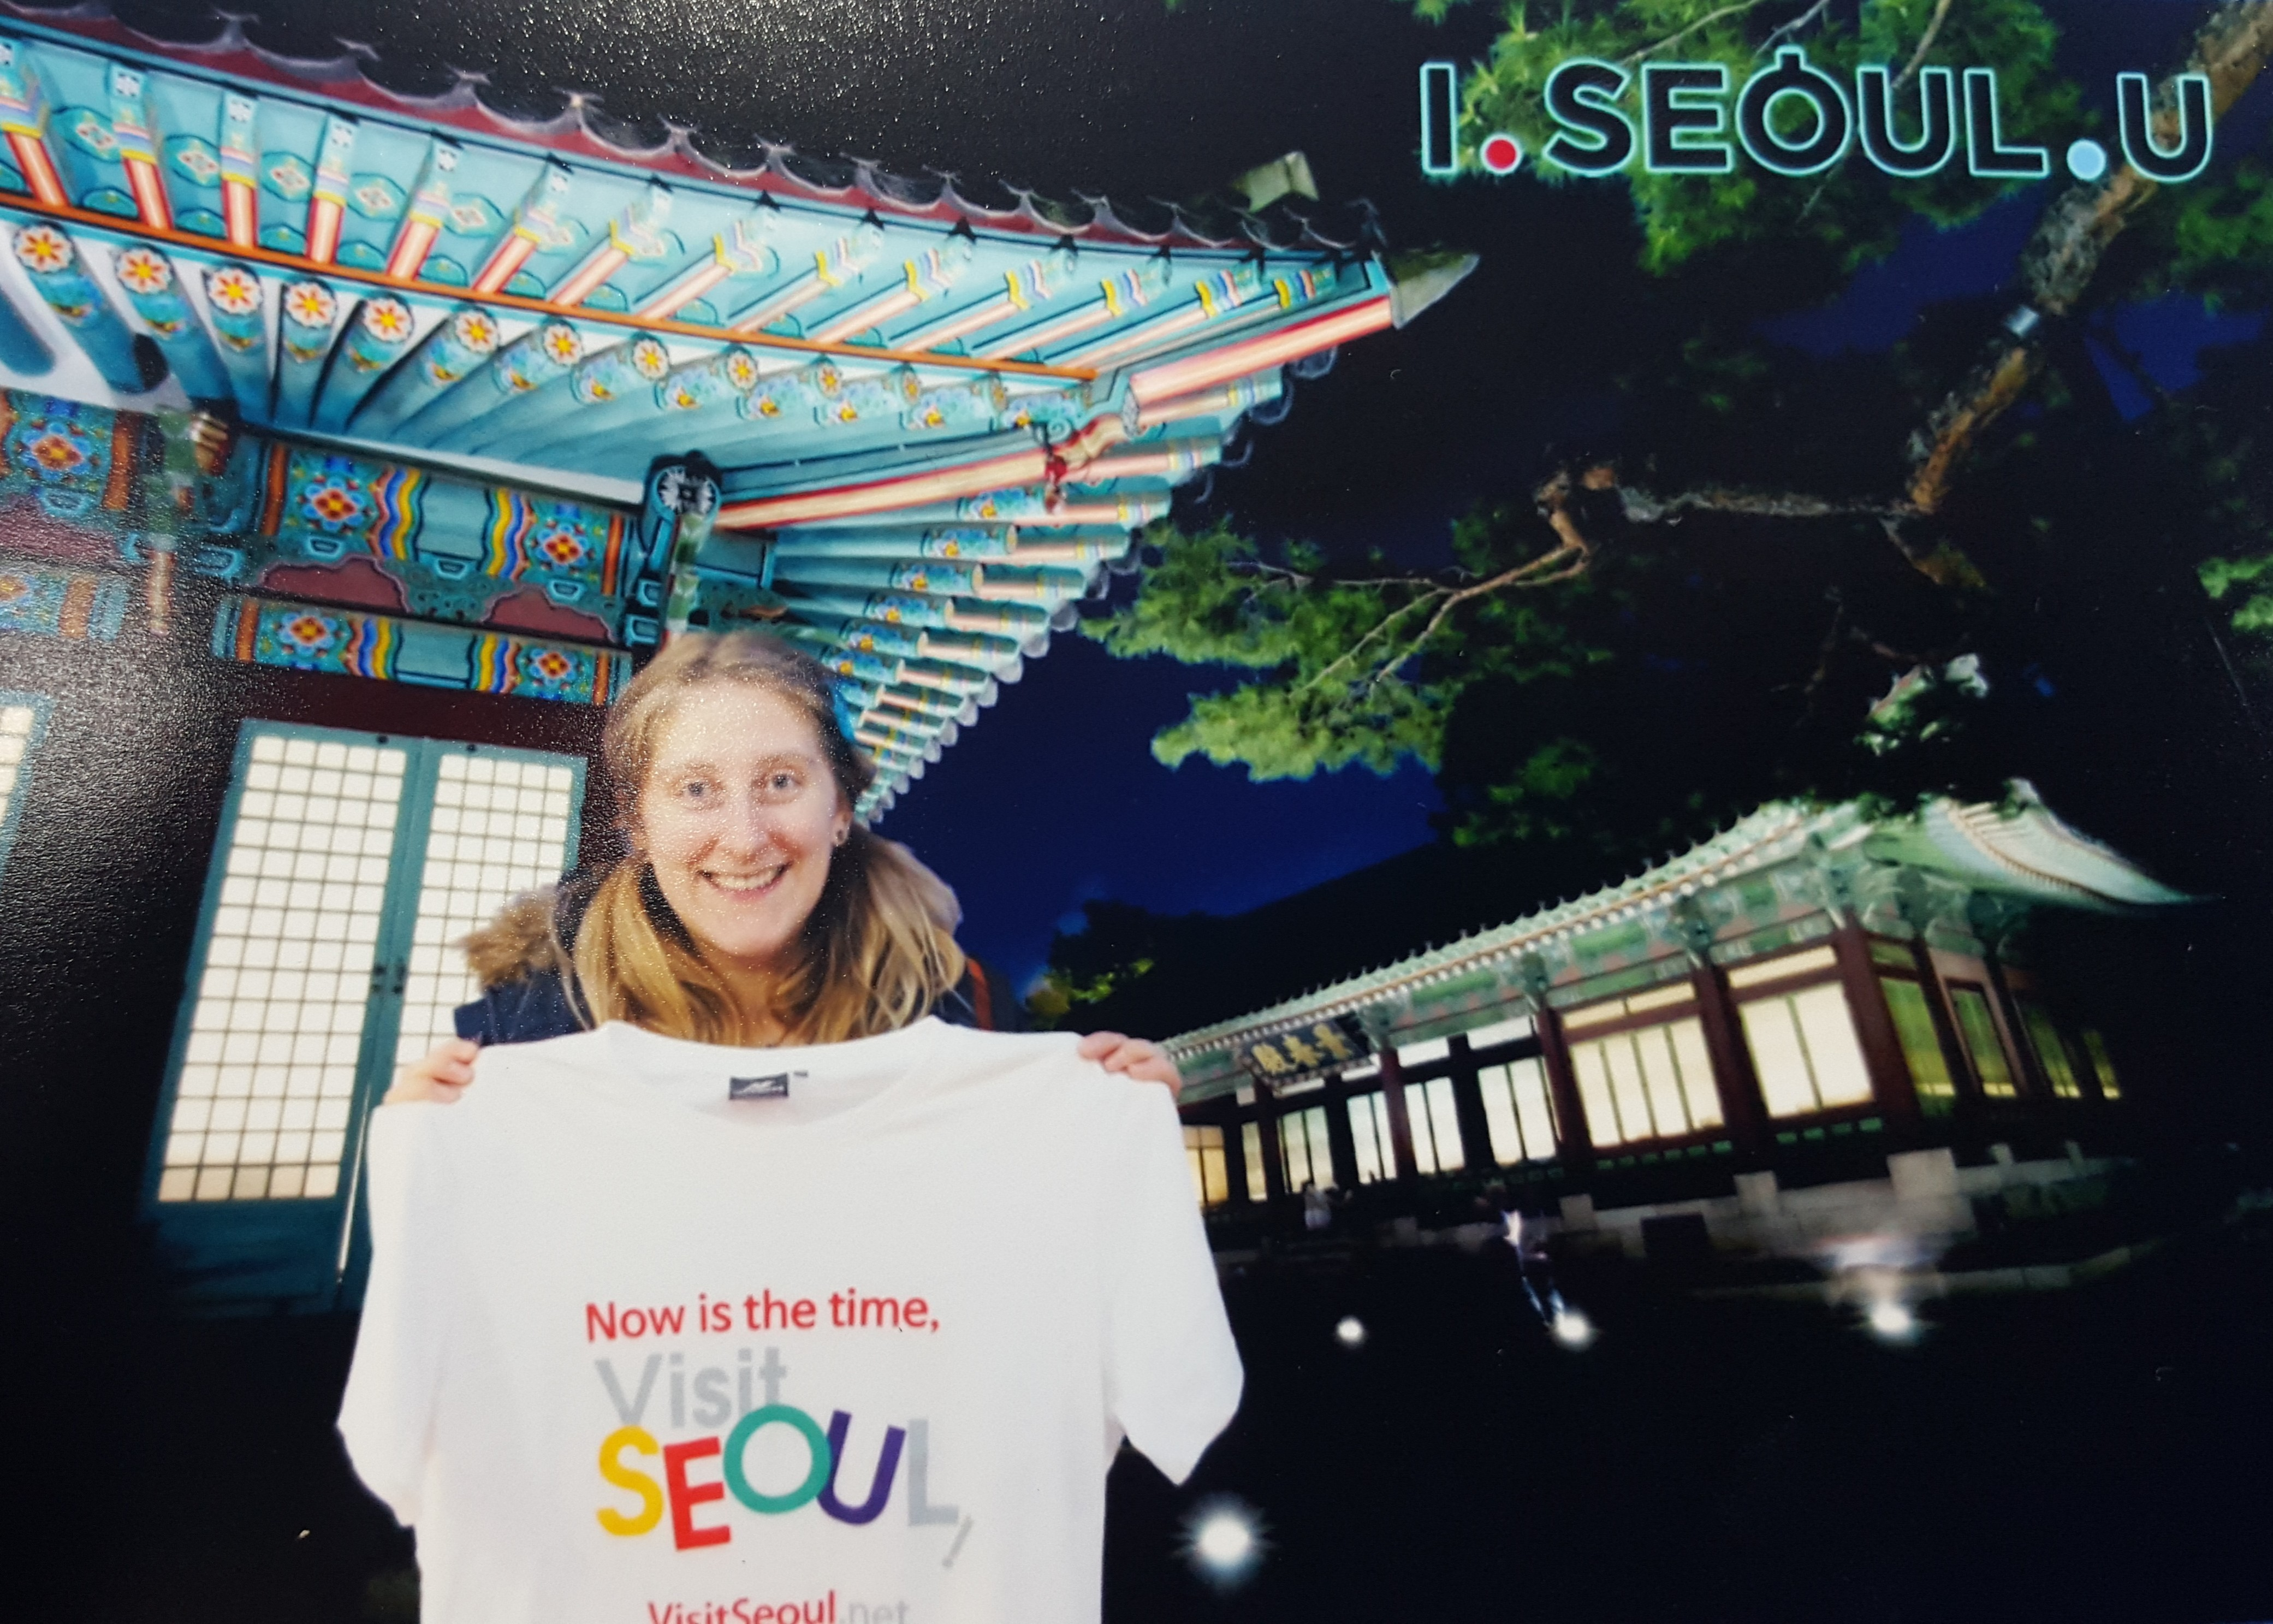 Seoul: old times, new times, dangerous times, tasty times